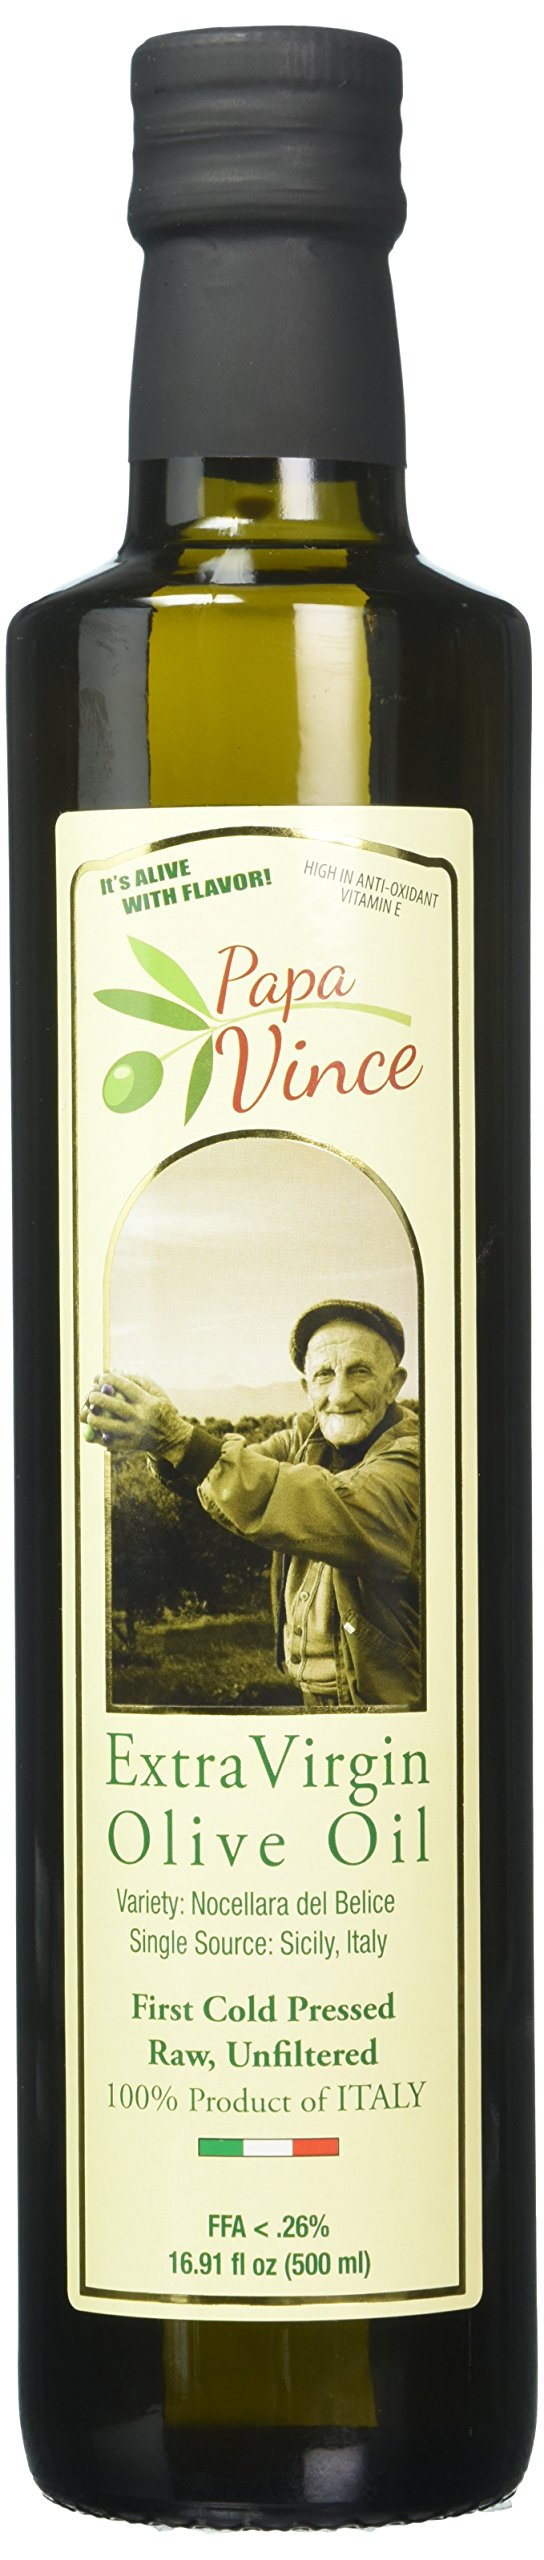 Papa Vince Olive Oil Extra Virgin - First Cold Pressed 2017/18, Sicily, Italy, Unblended, Unfiltered, Unrefined, Robust, Rich in Antioxidant | Single Estate from our family in Sicily - 16.9 fl oz